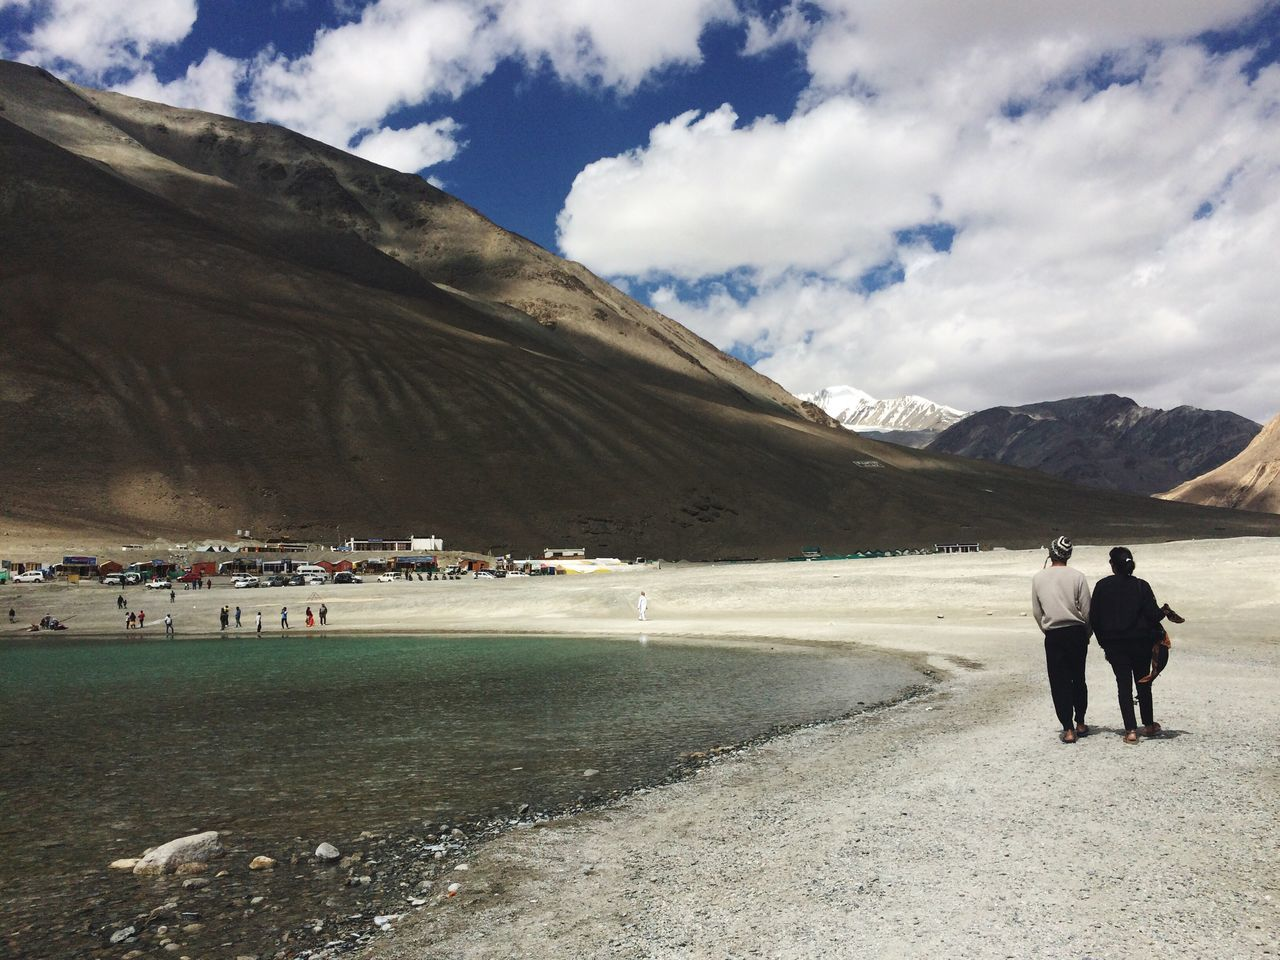 Walk by the Pangong Tso Lake Couple Couplegoals Pangonglake Pangong Brother & Sister Lake Leh Ladakh India Indiaborderside Indiaborder China Tibet